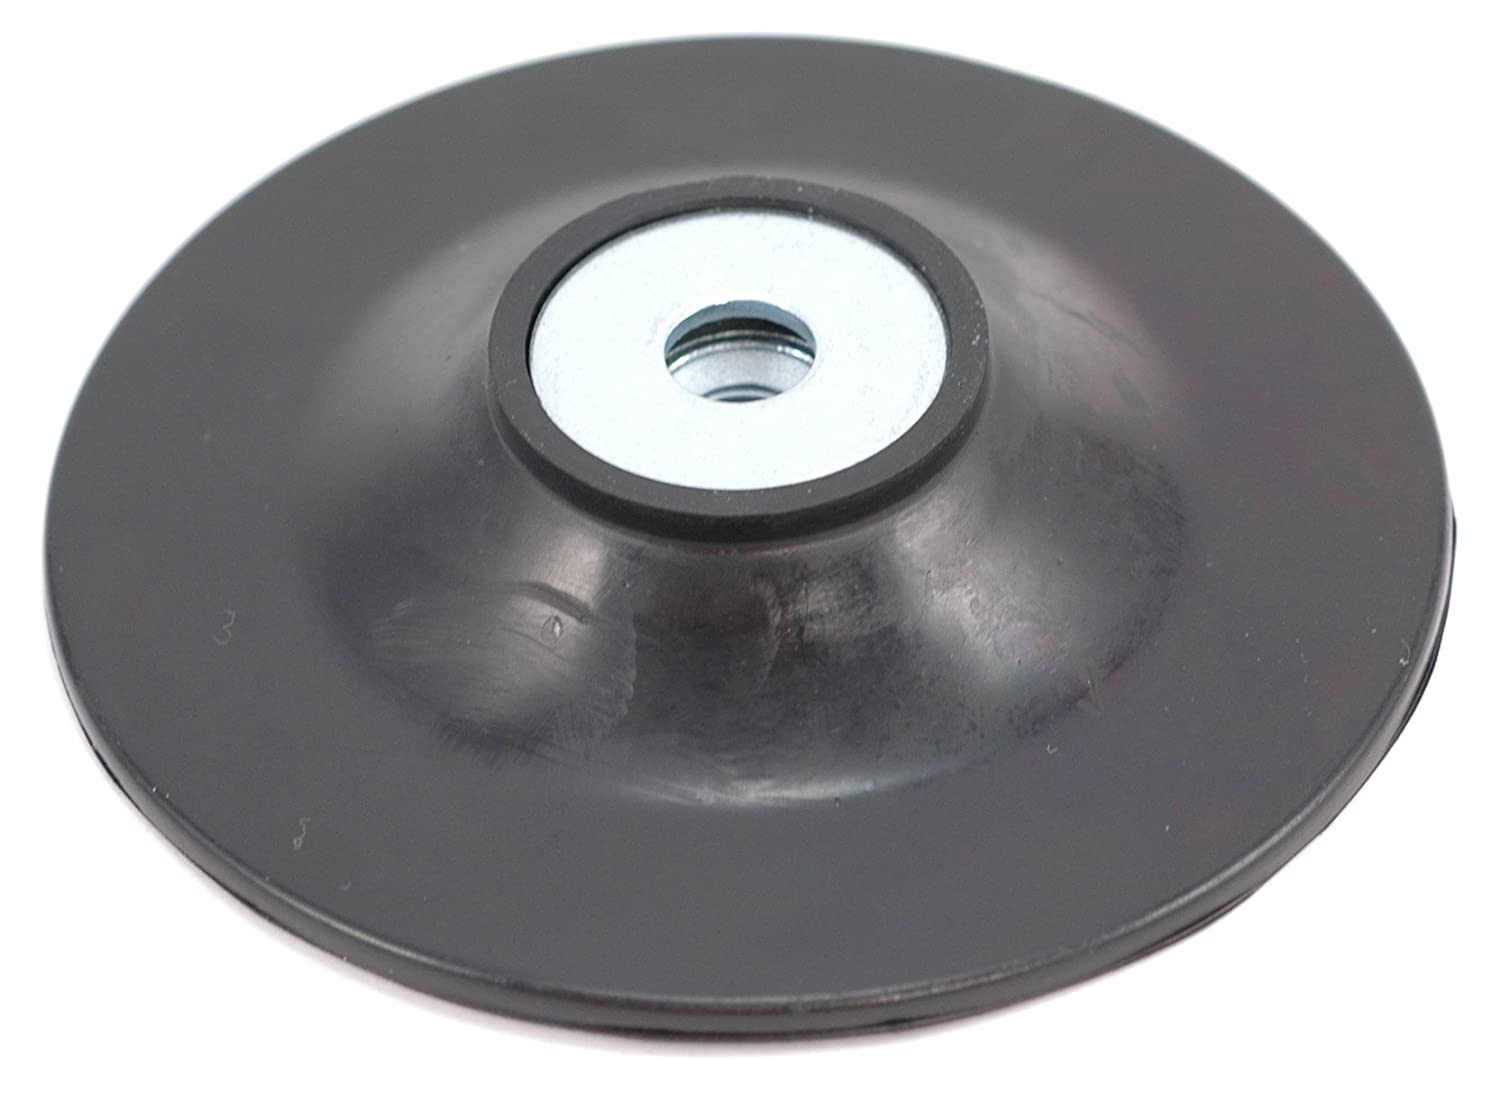 Hot Max 26179 7-Inch by 5/8-Inch-11NC Backing Pad with Spindle Nut